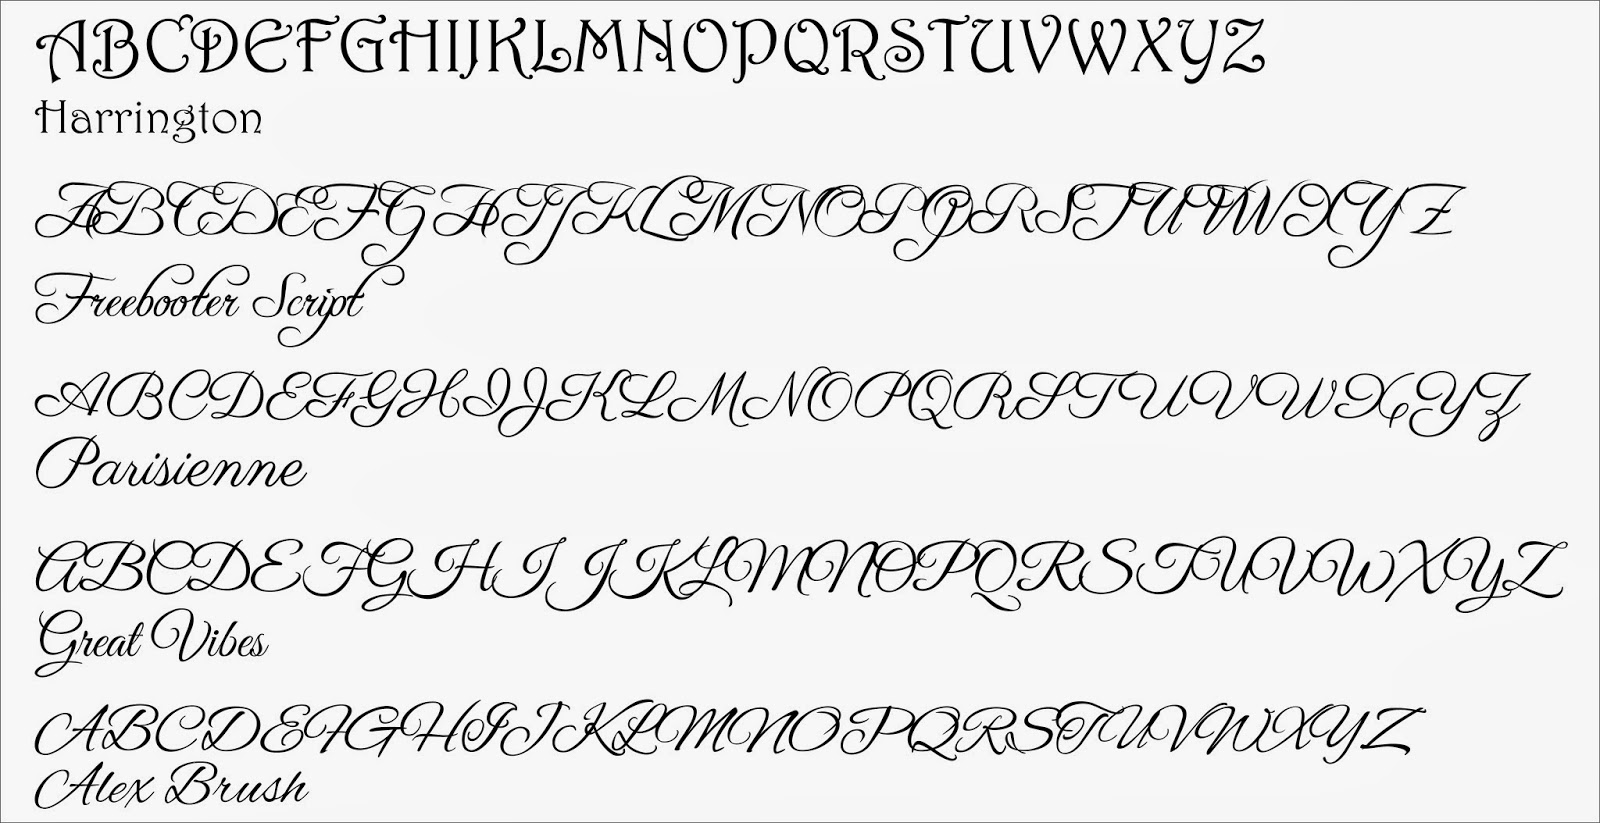 Northern Owl Creations: Choosing a Font for Your Wedding